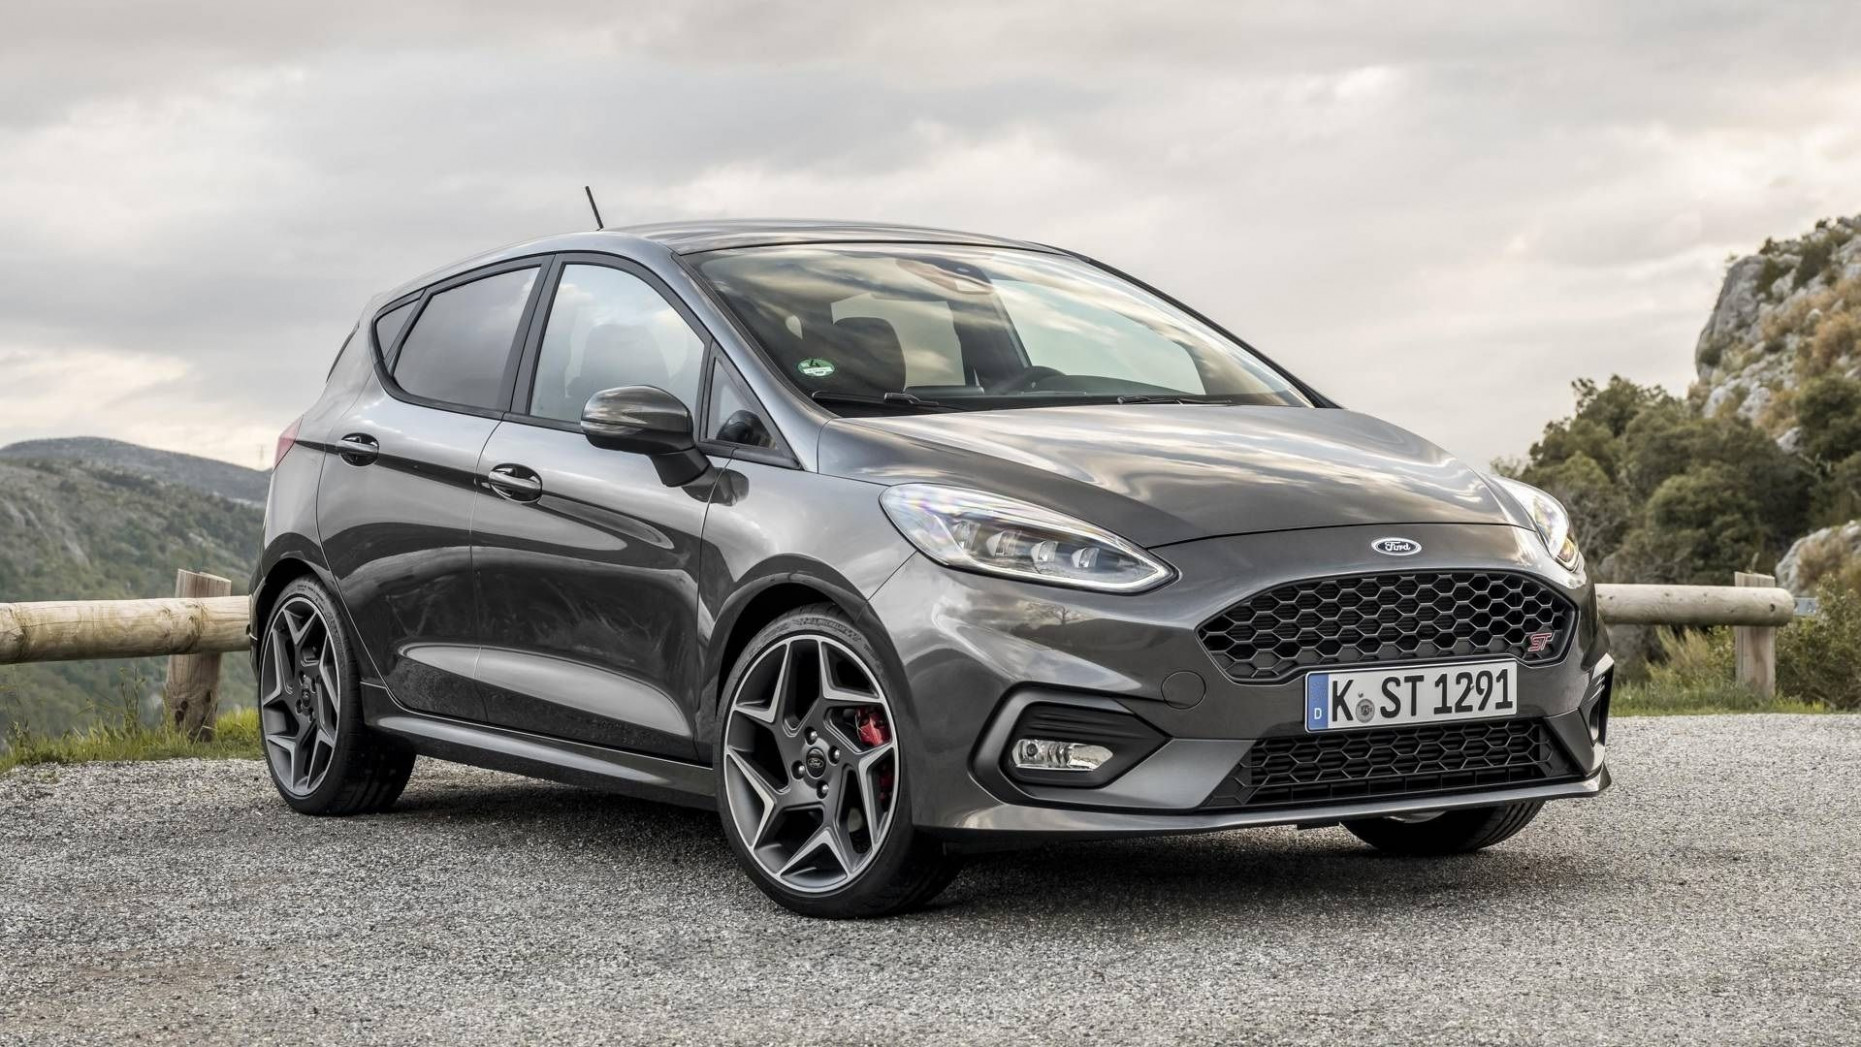 Prices 2022 Ford Fiesta St Rs